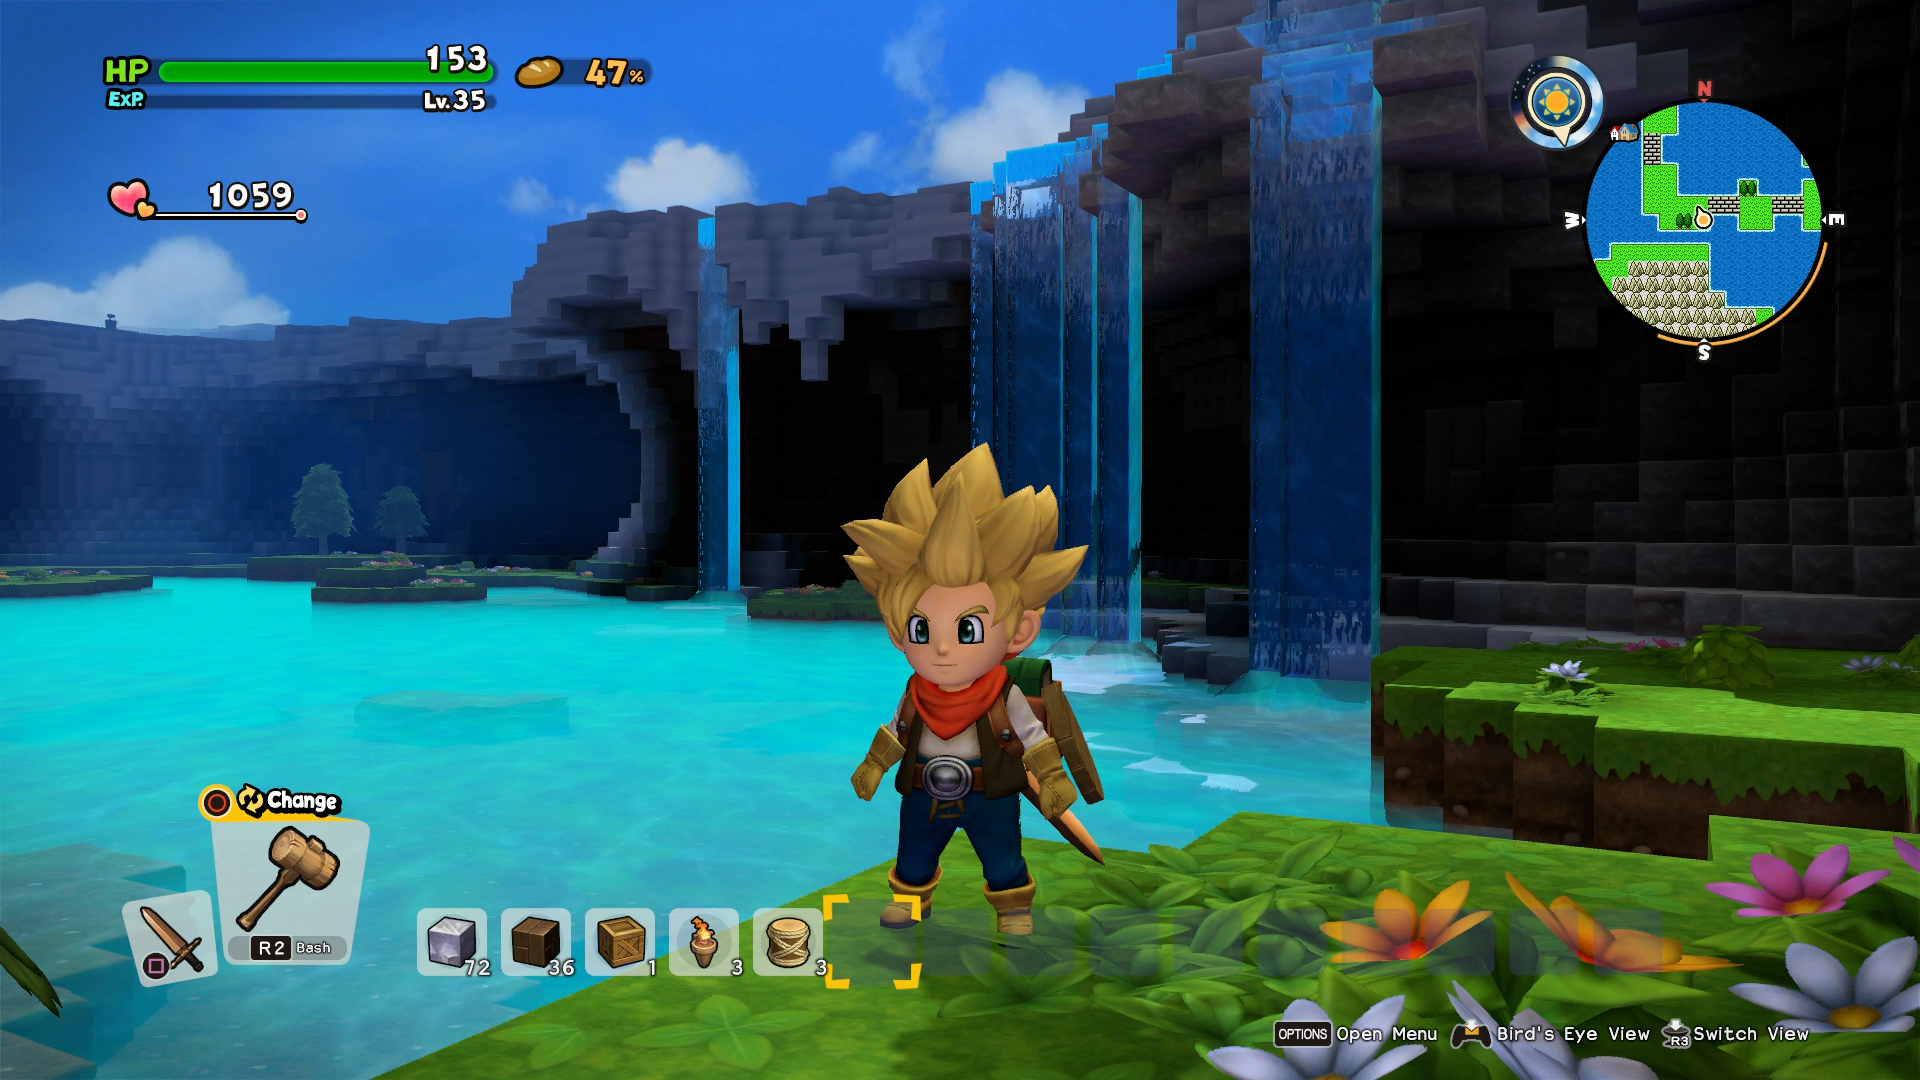 Dragon Quest Builders 2 10 Tips Tricks To Help You Become A Master Builder Beginner S Guide Gameranx Check out this guide dragon quest builders 2 room building guide to build them all. dragon quest builders 2 10 tips